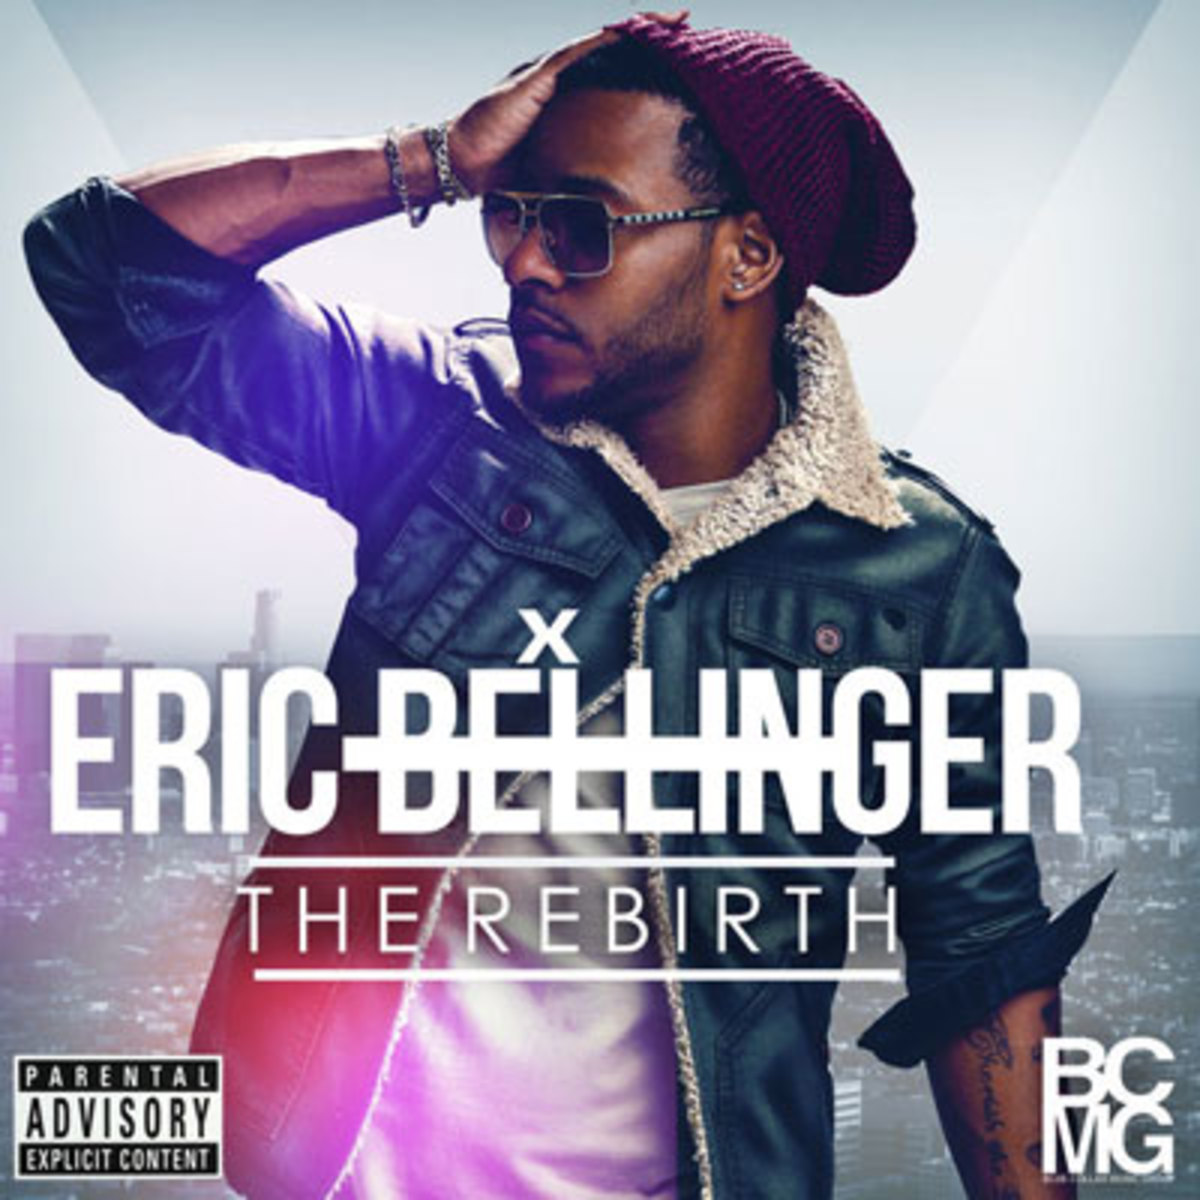 ericbellinger-therebirth.jpg